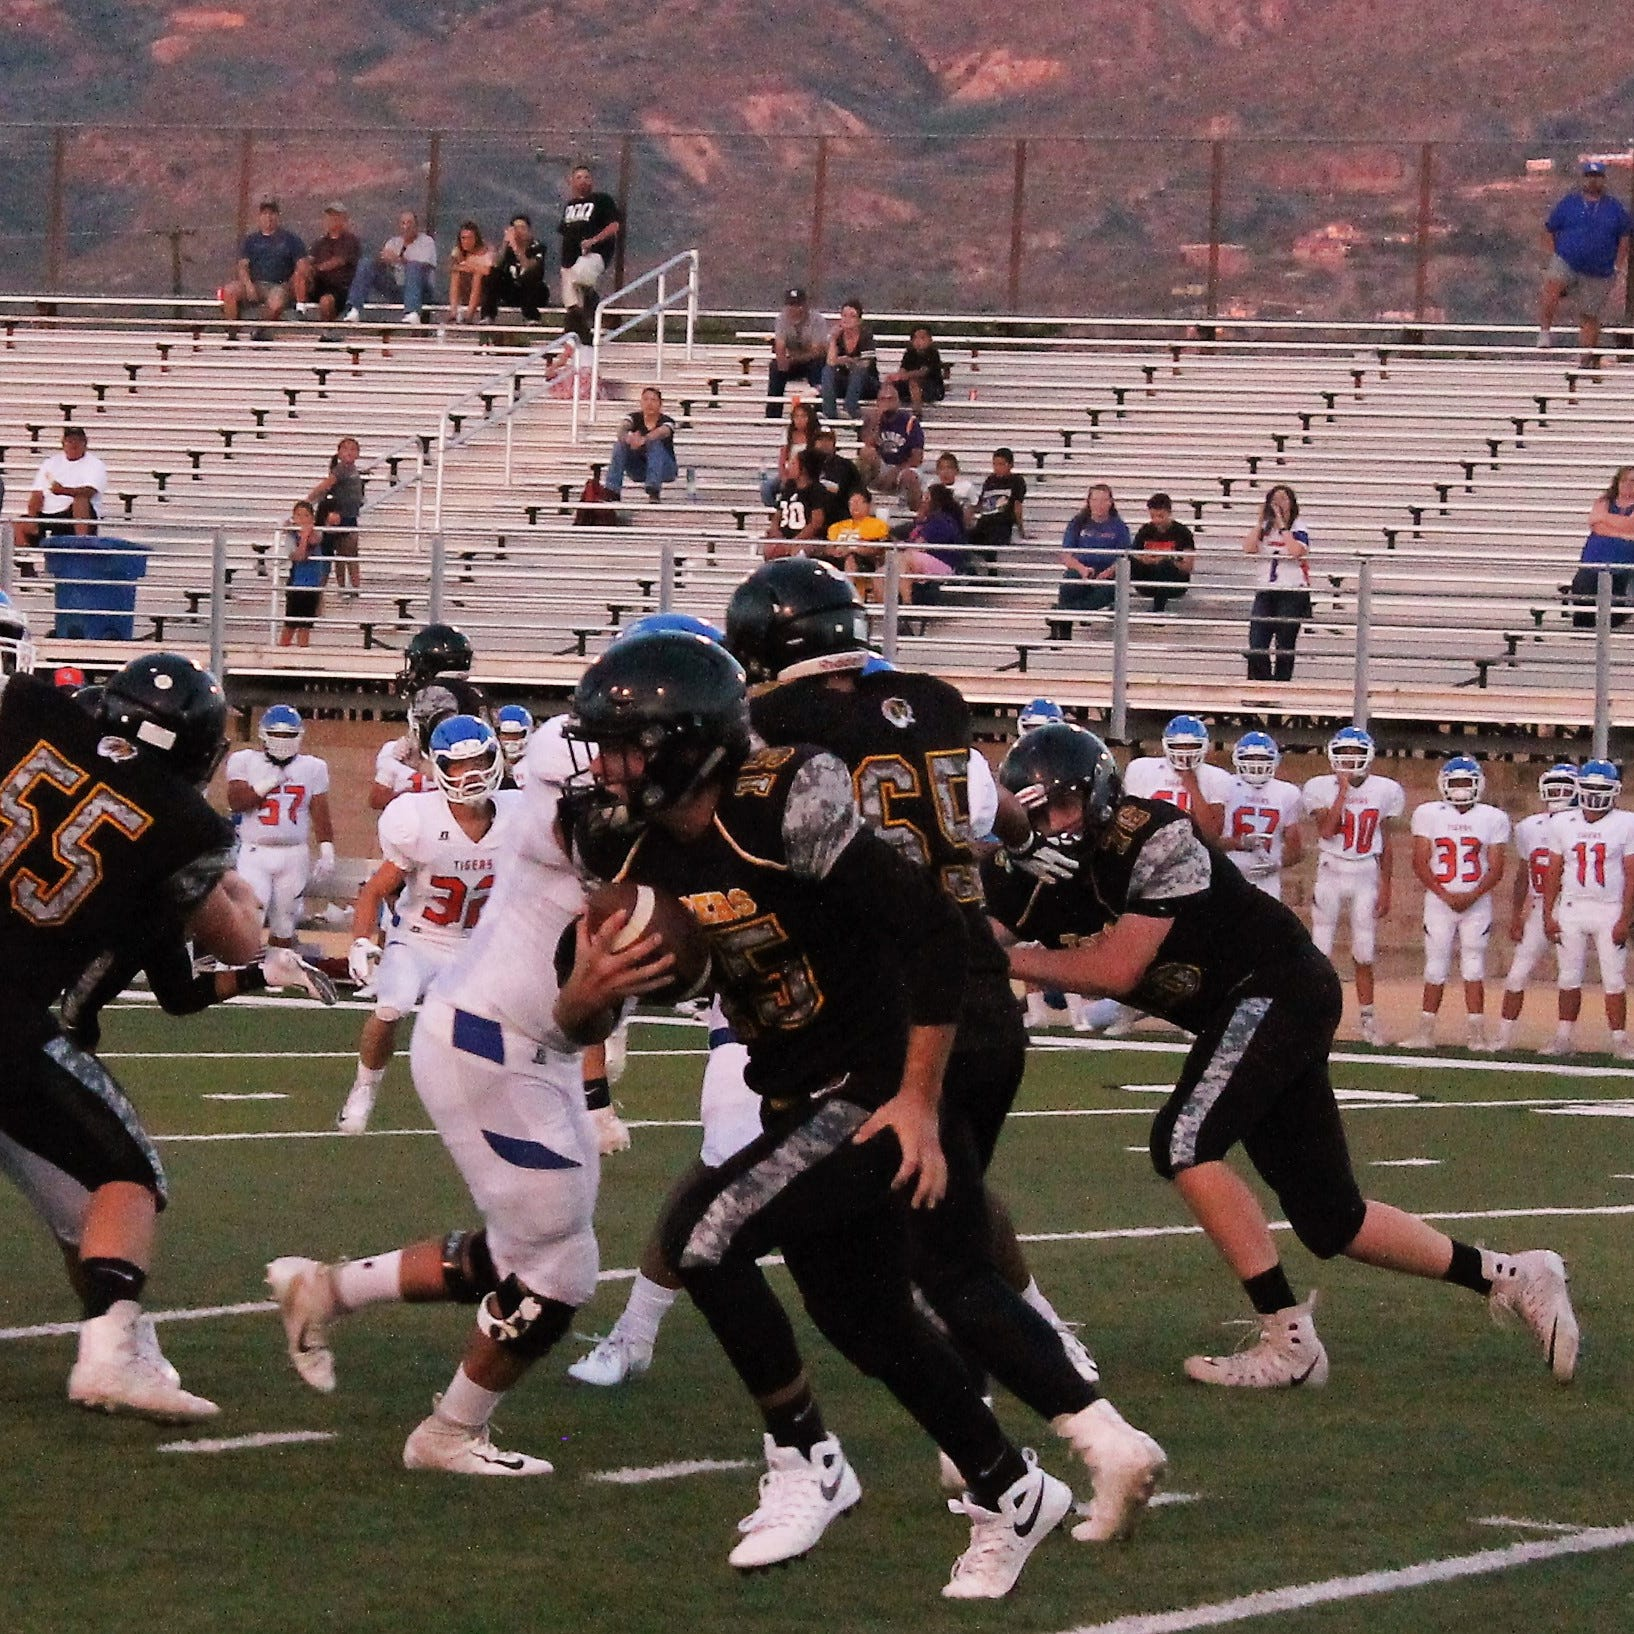 AHS Tigers lose to Los Lunas 12-35 in season's first home game